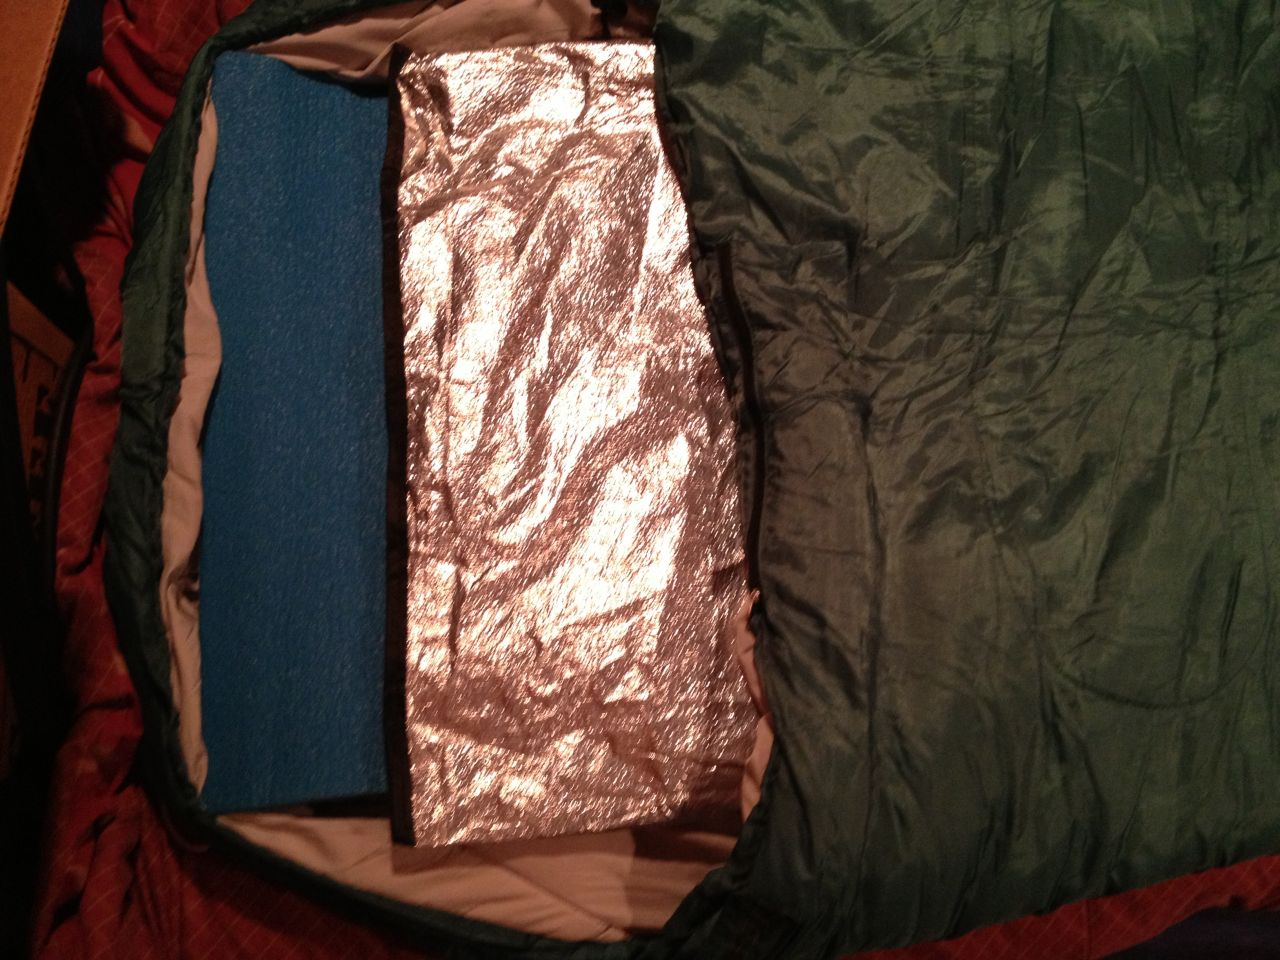 Reflective Foil Tarp And Blue Ccf Pad In An Old Sleeping Bag